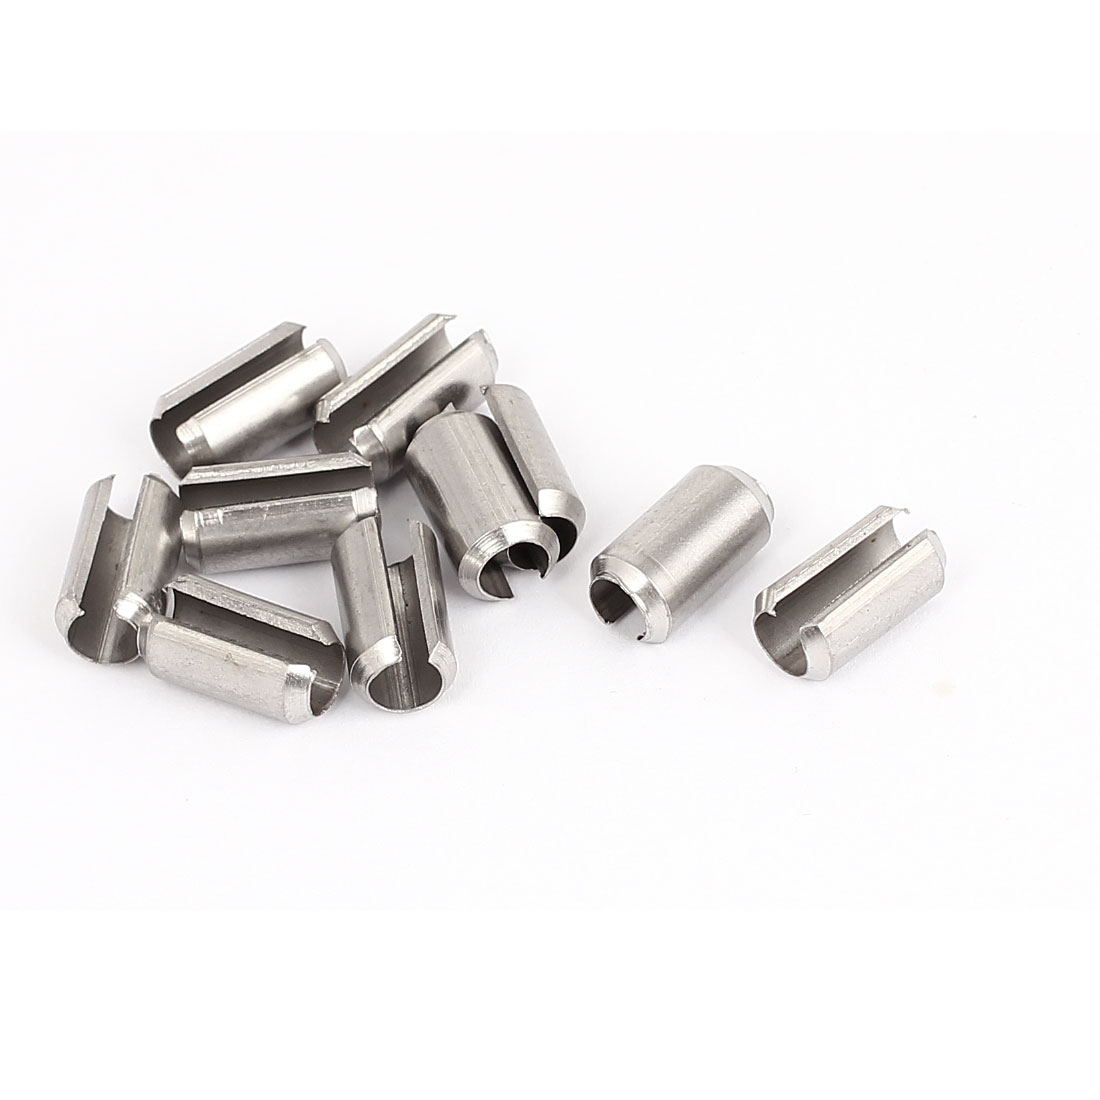 M8x16mm 304 Stainless Steel Split Spring Roll Dowel Pins Fasteners 10Pcs